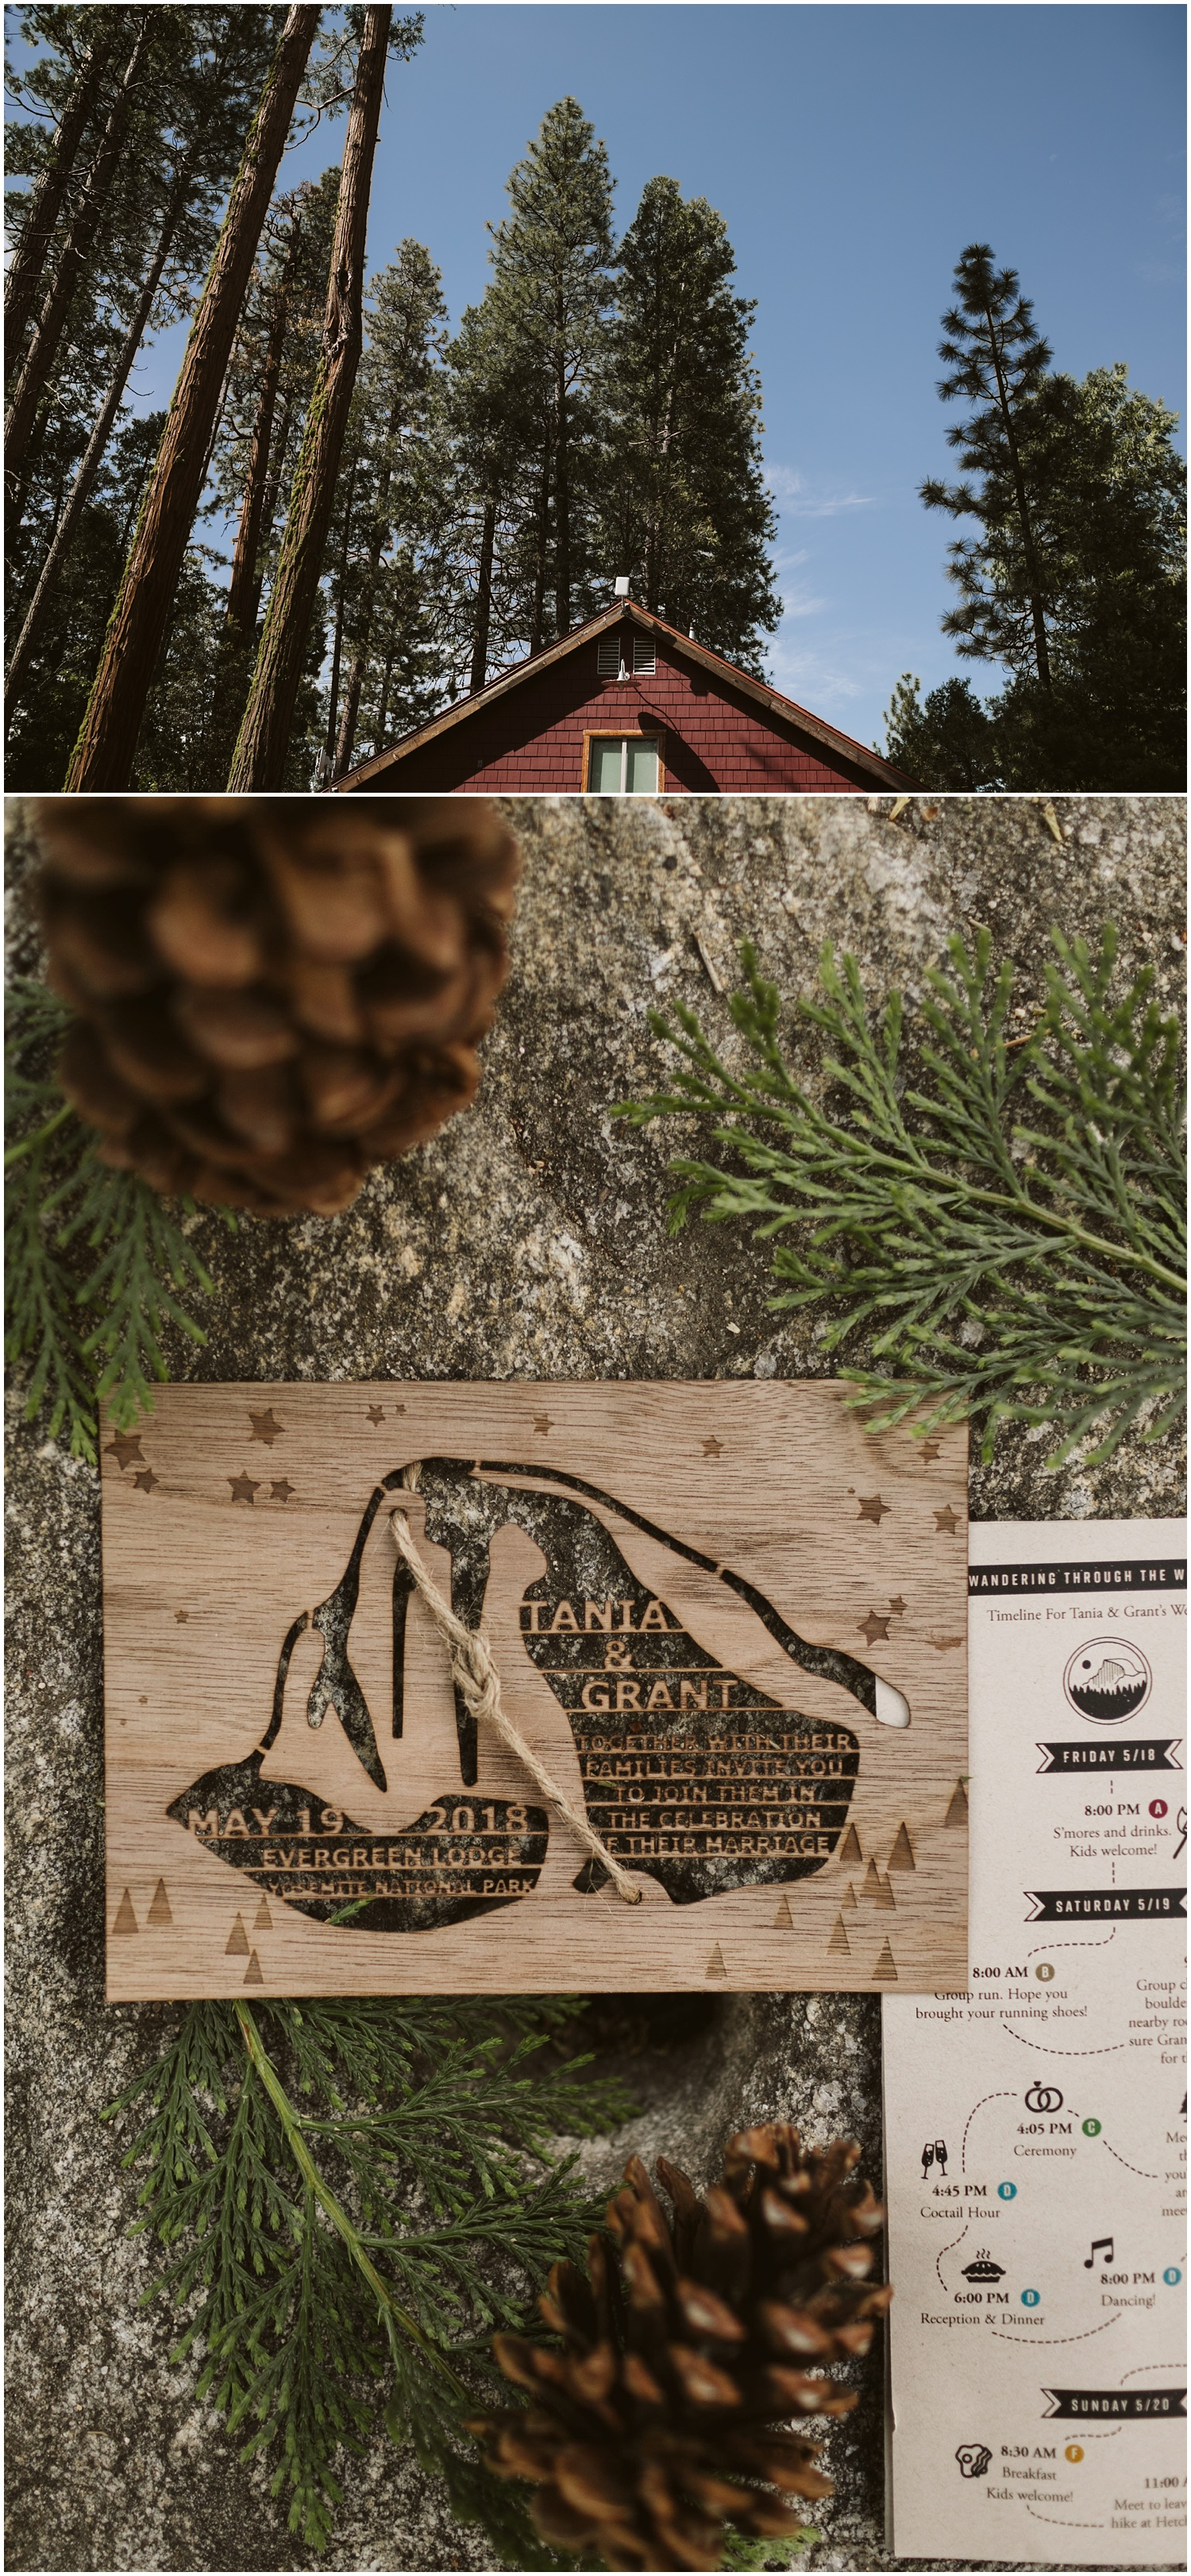 Evergreen Lodge Yosemite Wedding | Tania & Grant